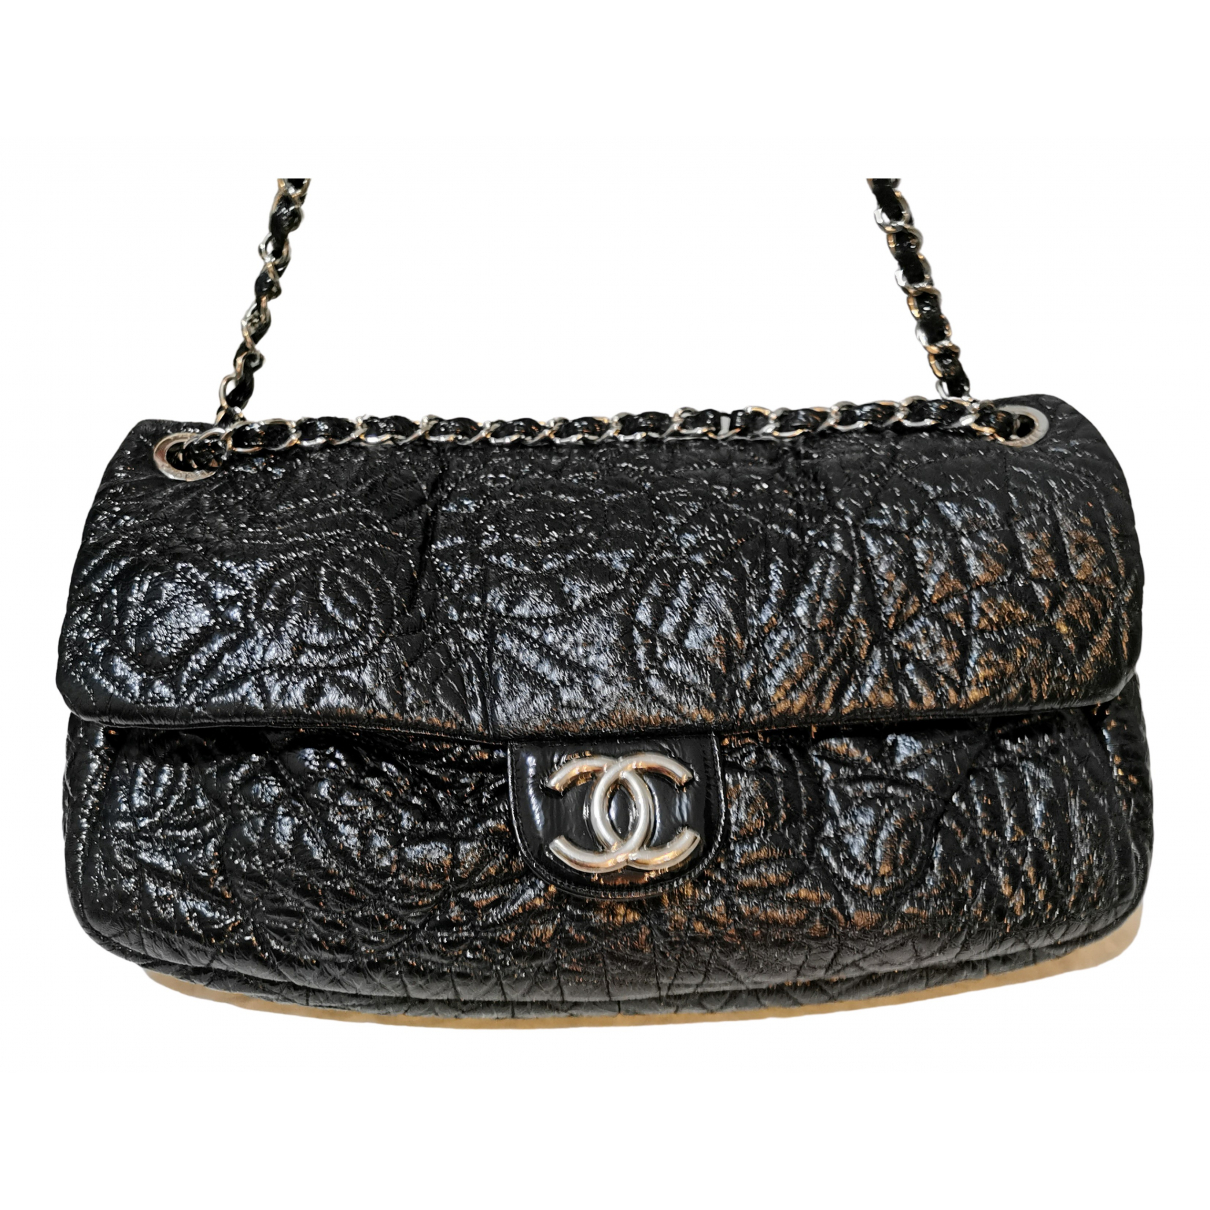 Chanel Timeless/Classique Black Patent leather handbag for Women N